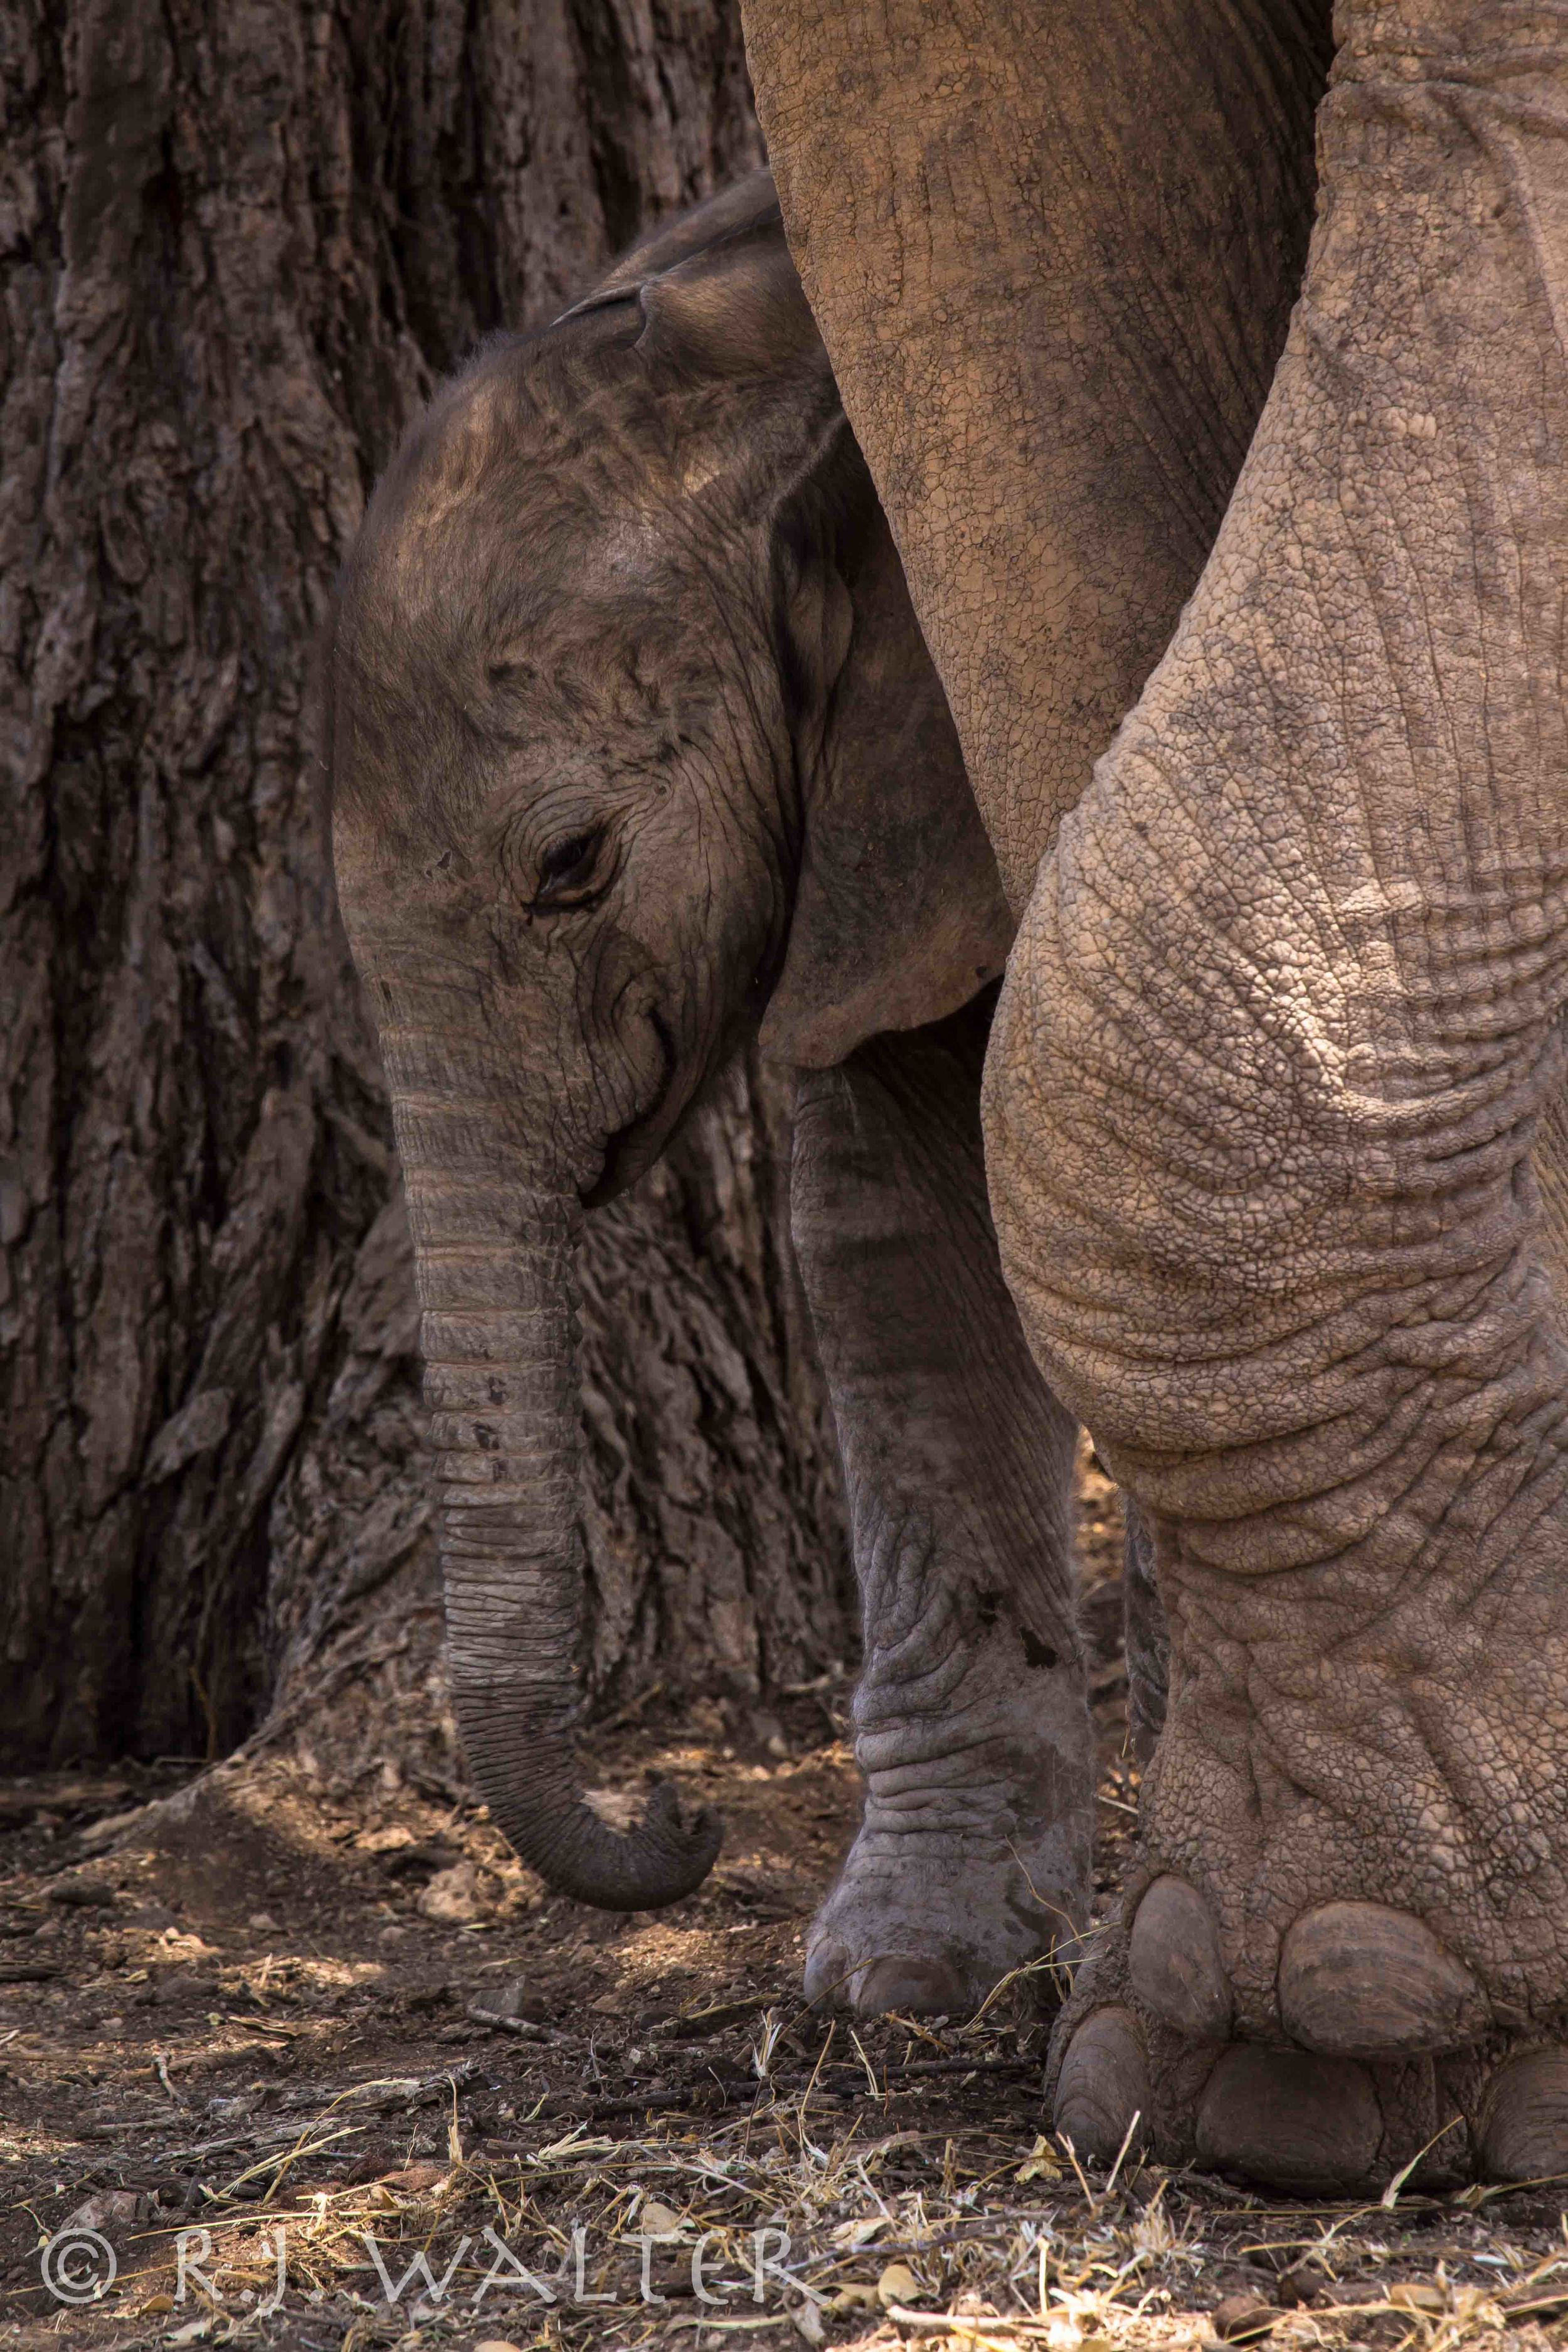 RJWalter_Save The Elephants_Samburu, Kenya_March 2015-2598.jpg